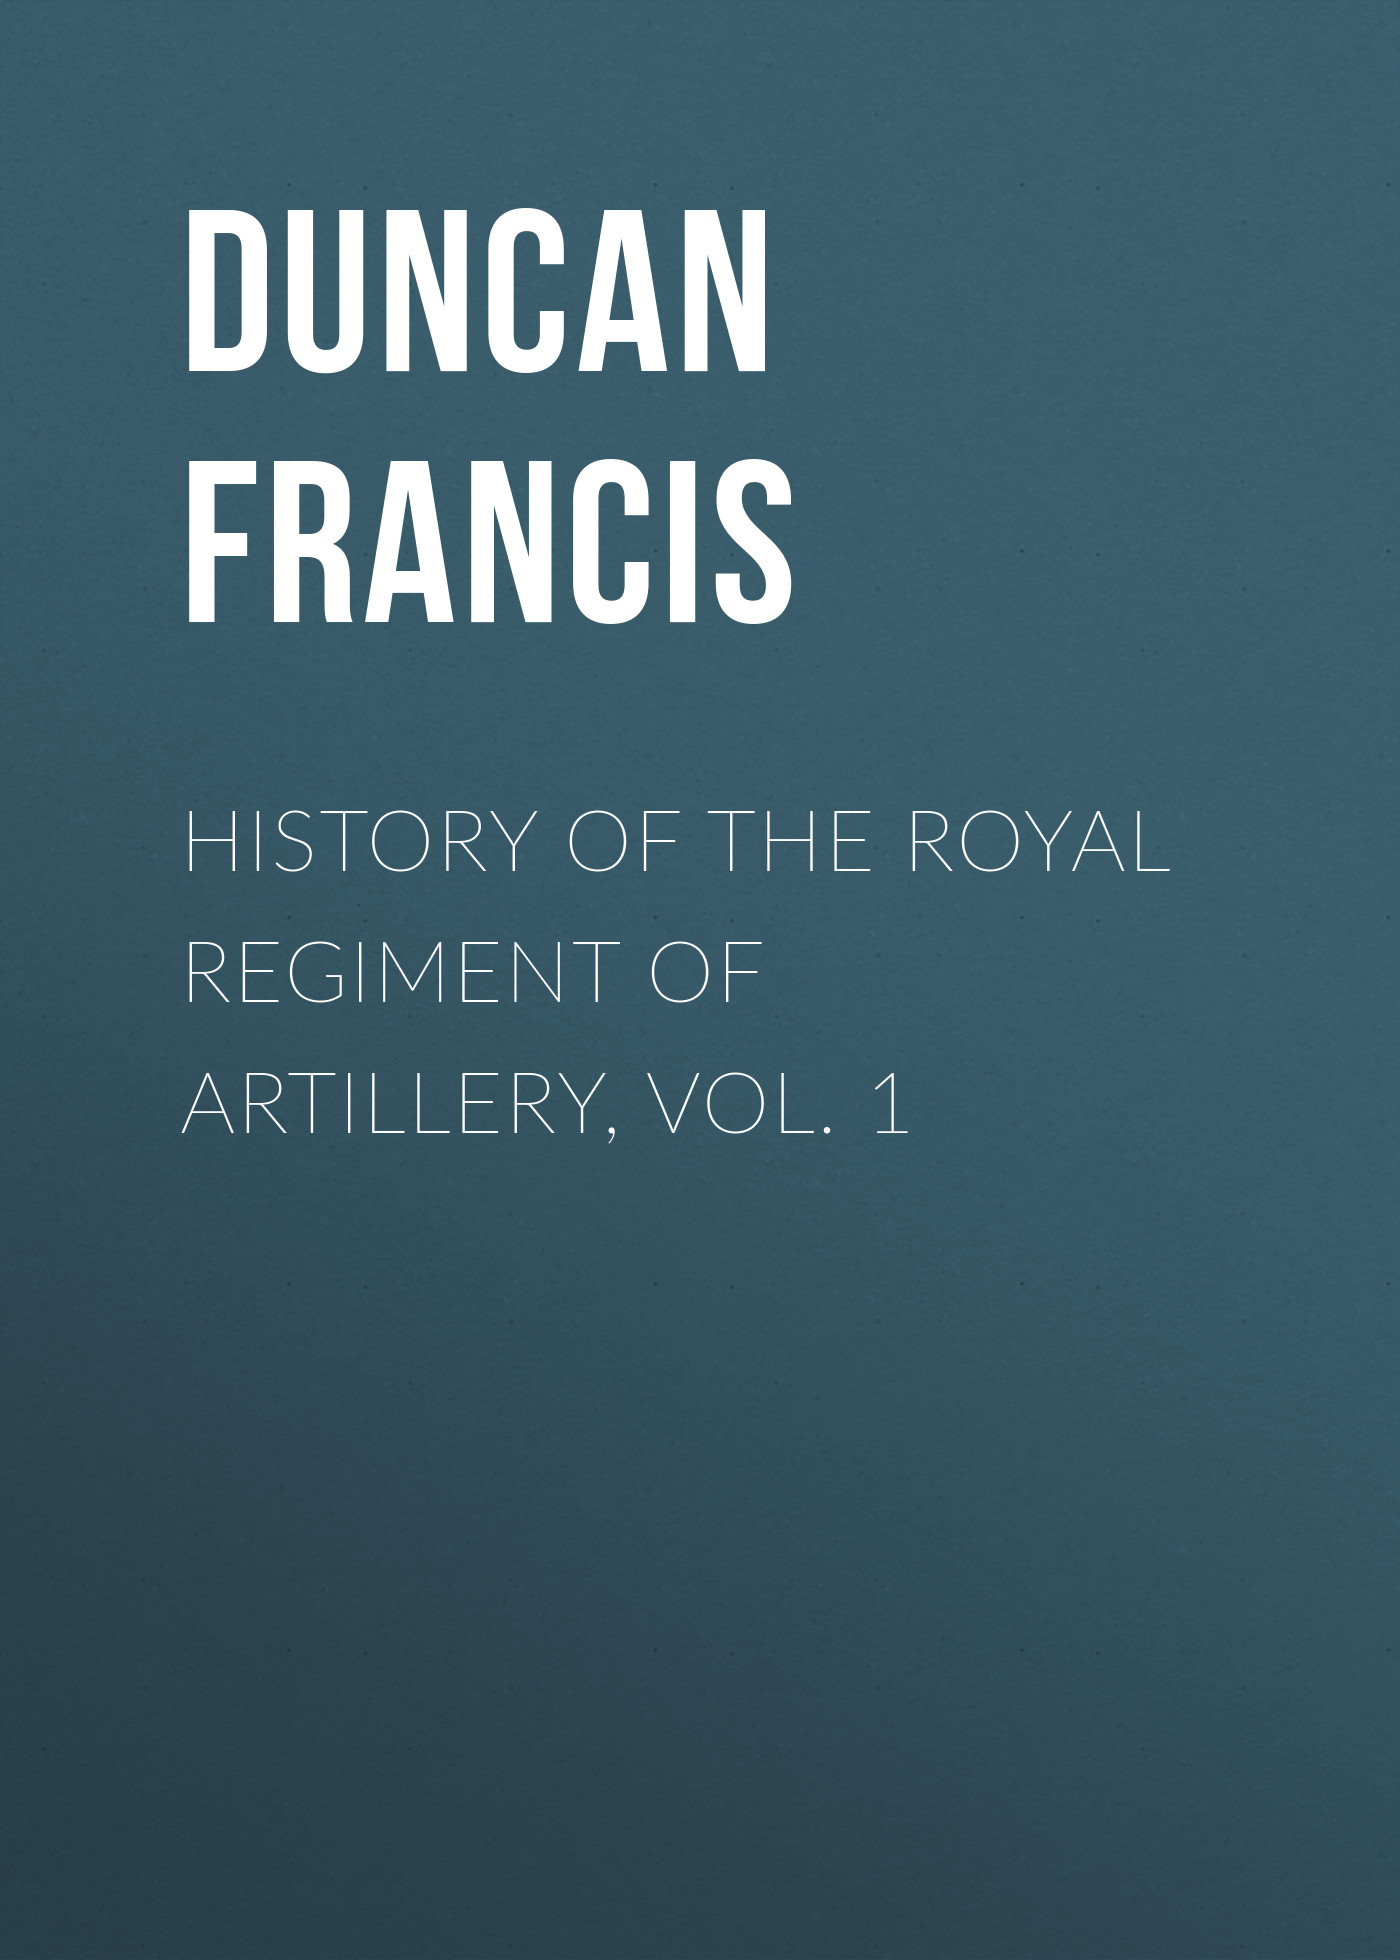 Duncan Francis History of the Royal Regiment of Artillery, Vol. 1 gasquet francis aidan the eve of the reformation